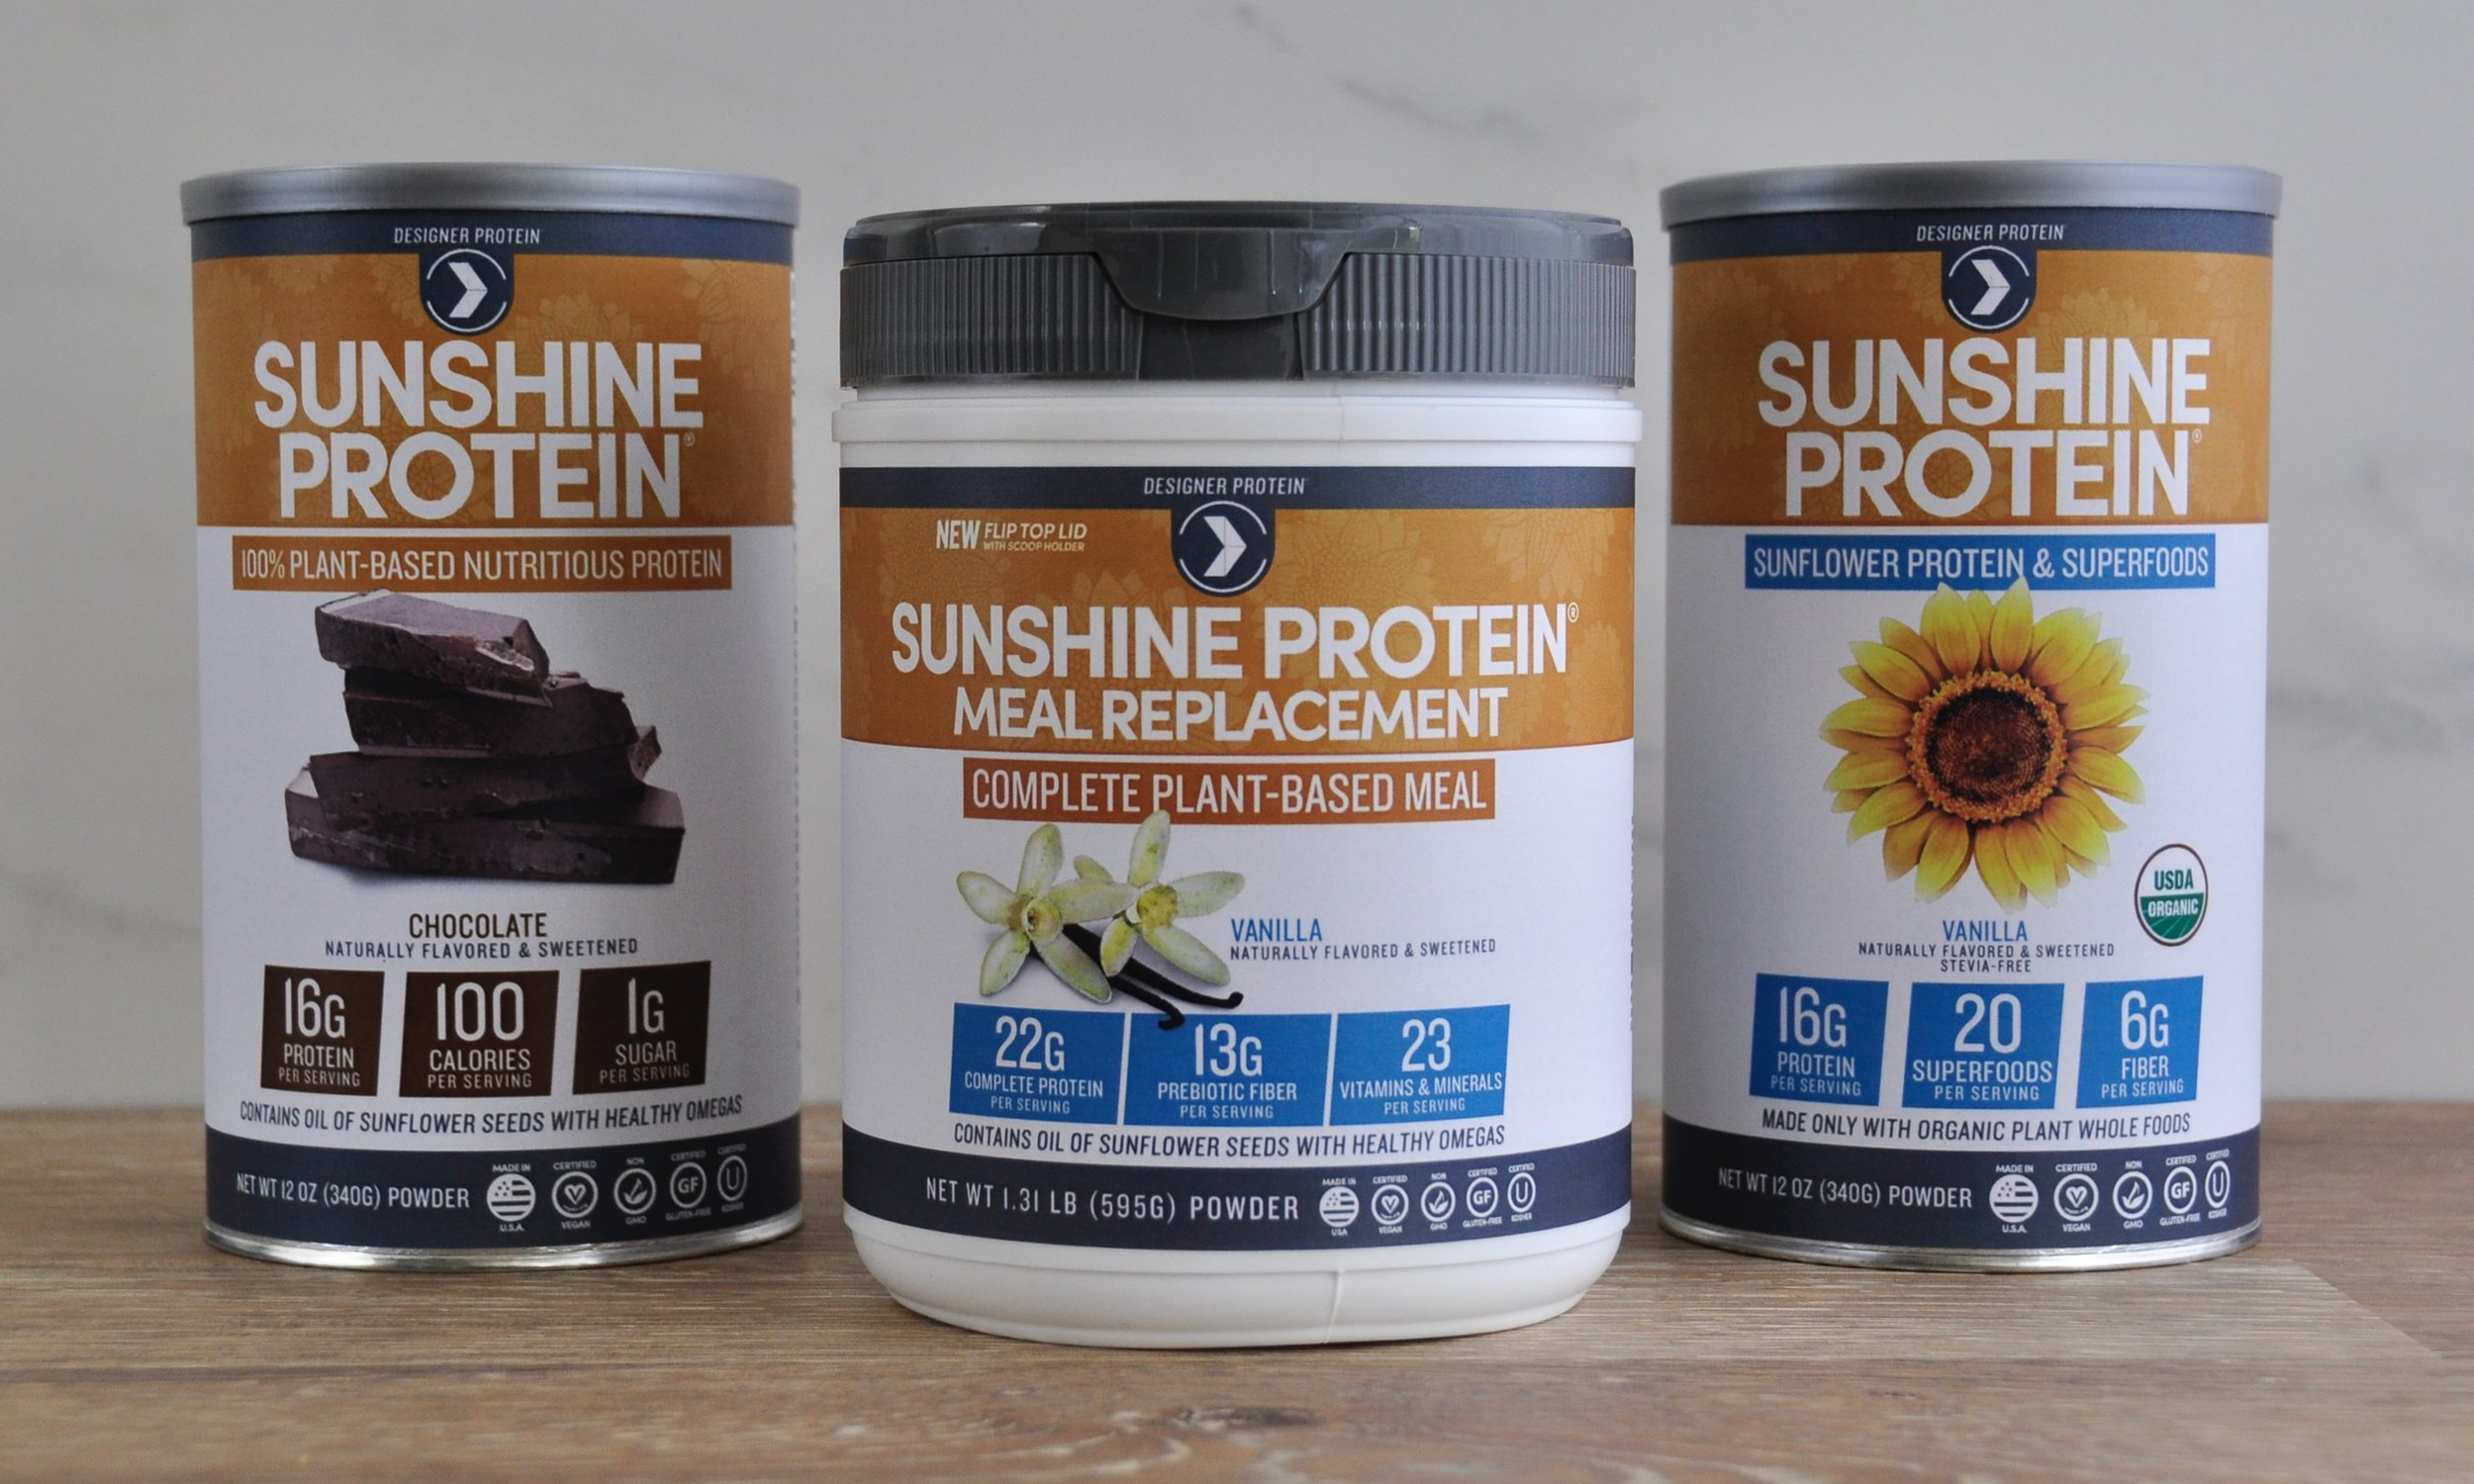 Sunshine Protein Family -collaborated on front panel design, in charge of designing back and nutritional panel layouts.